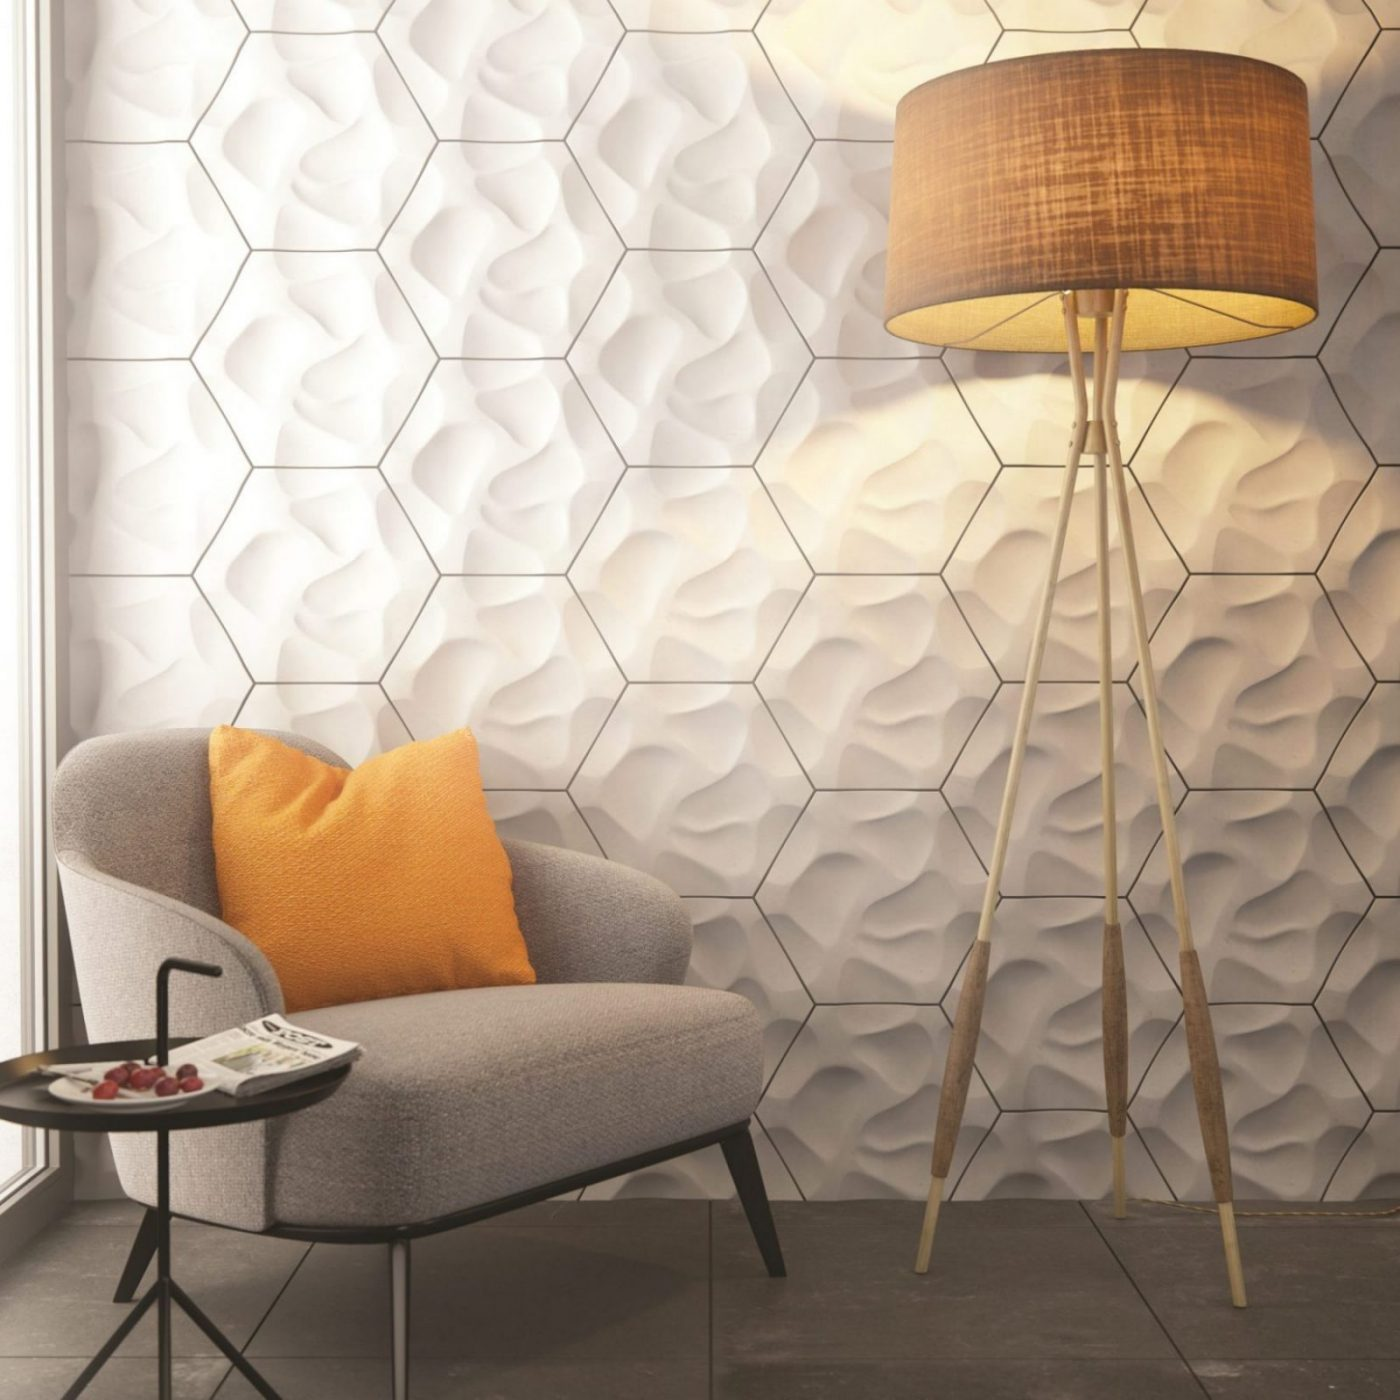 Wall Tiles By NMC Copley Decor